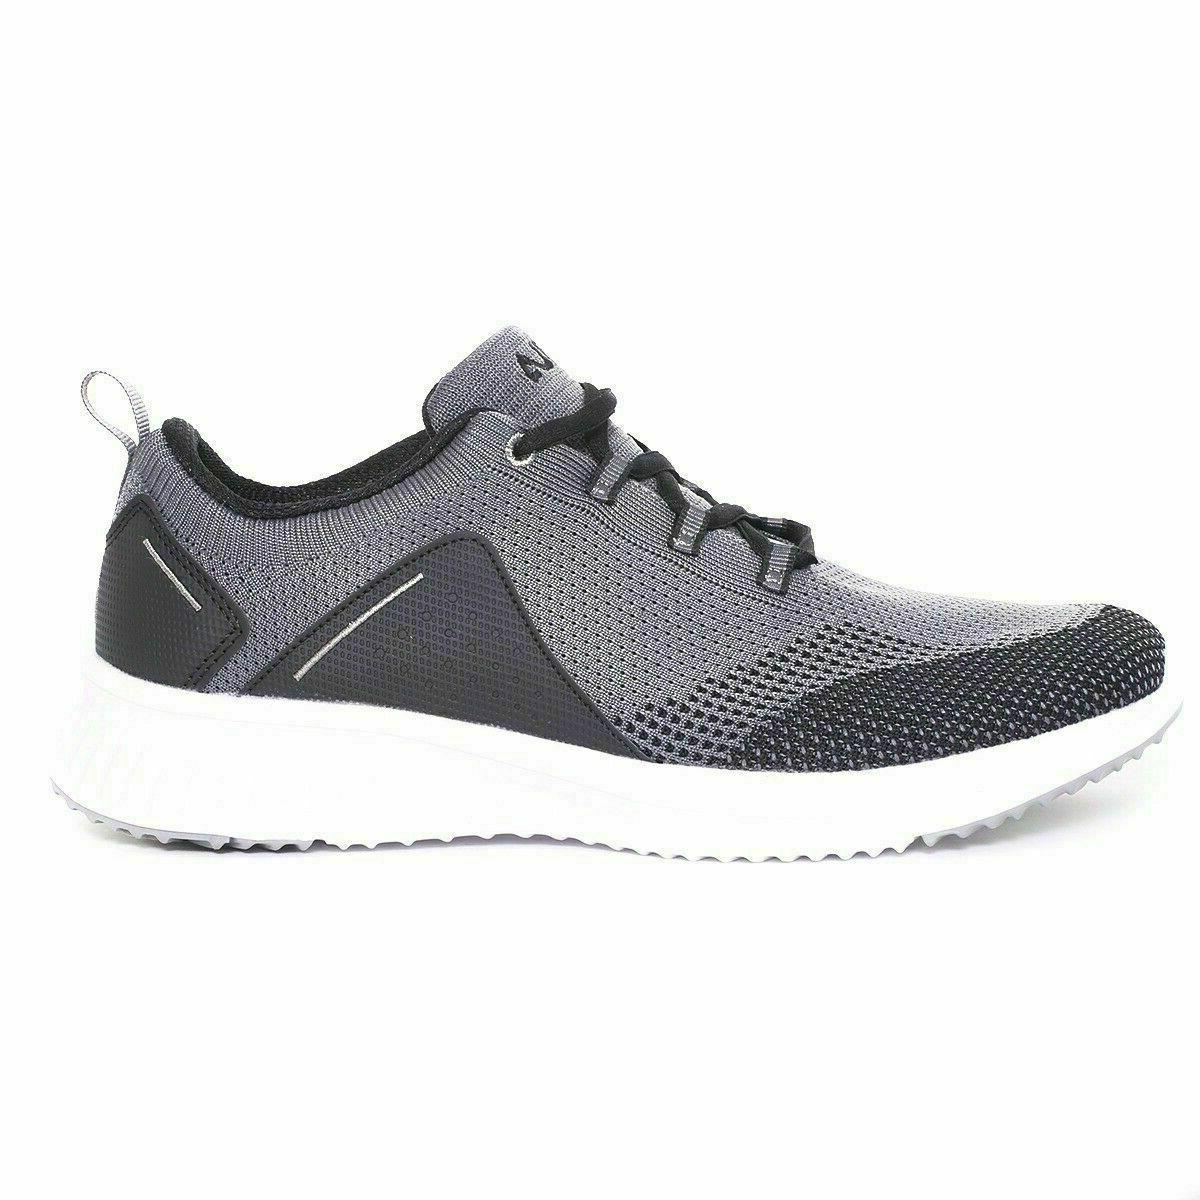 Fila Athletic Running Tennis Shoes Sneakers VERSO